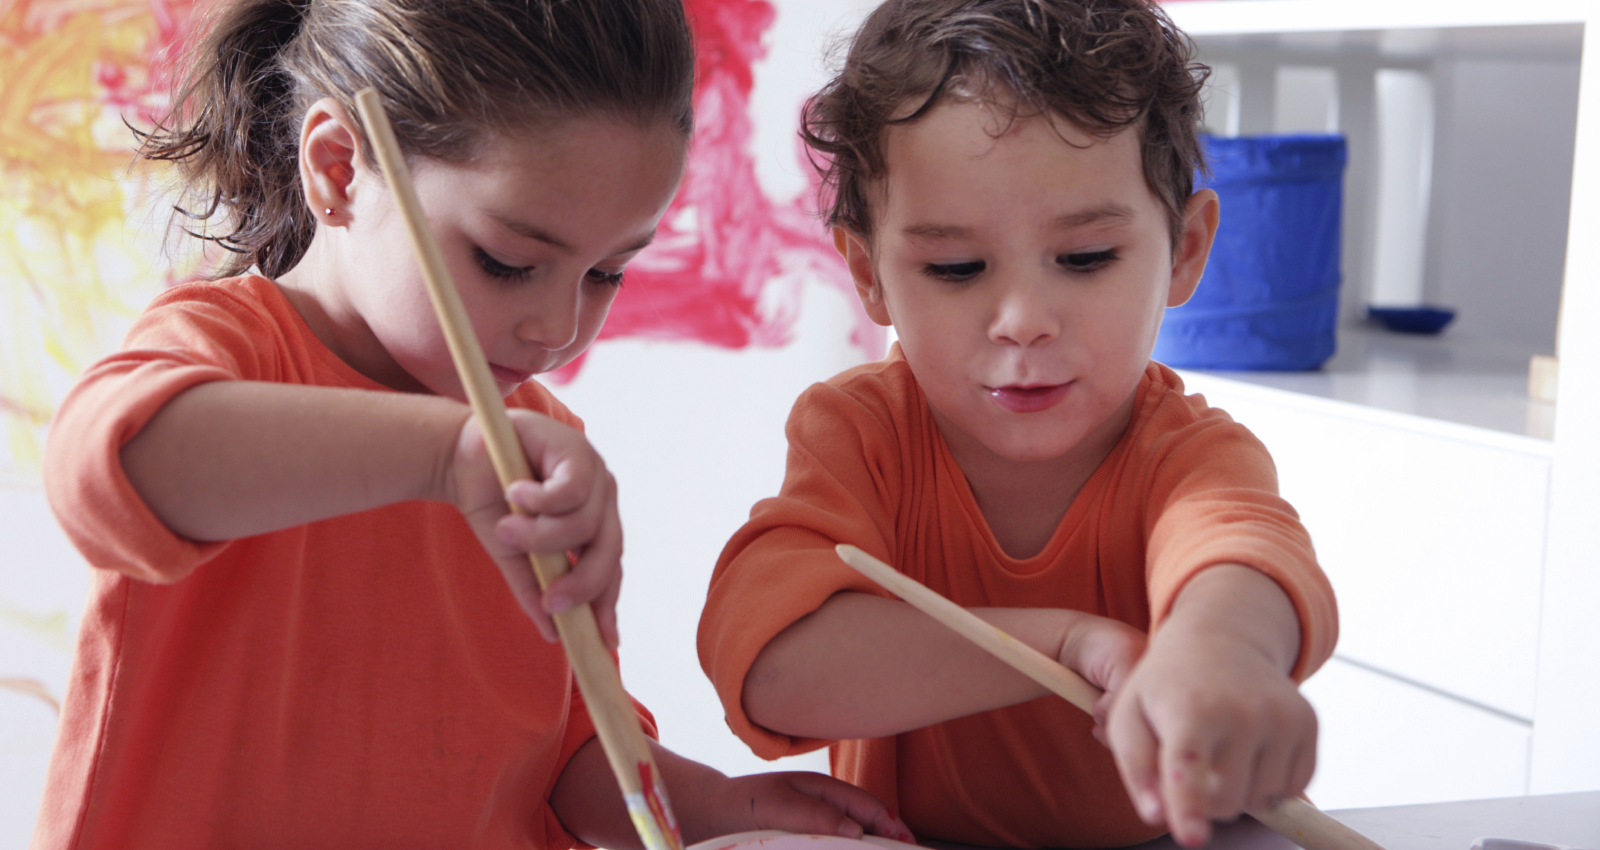 Two young children who are painting in a classroom